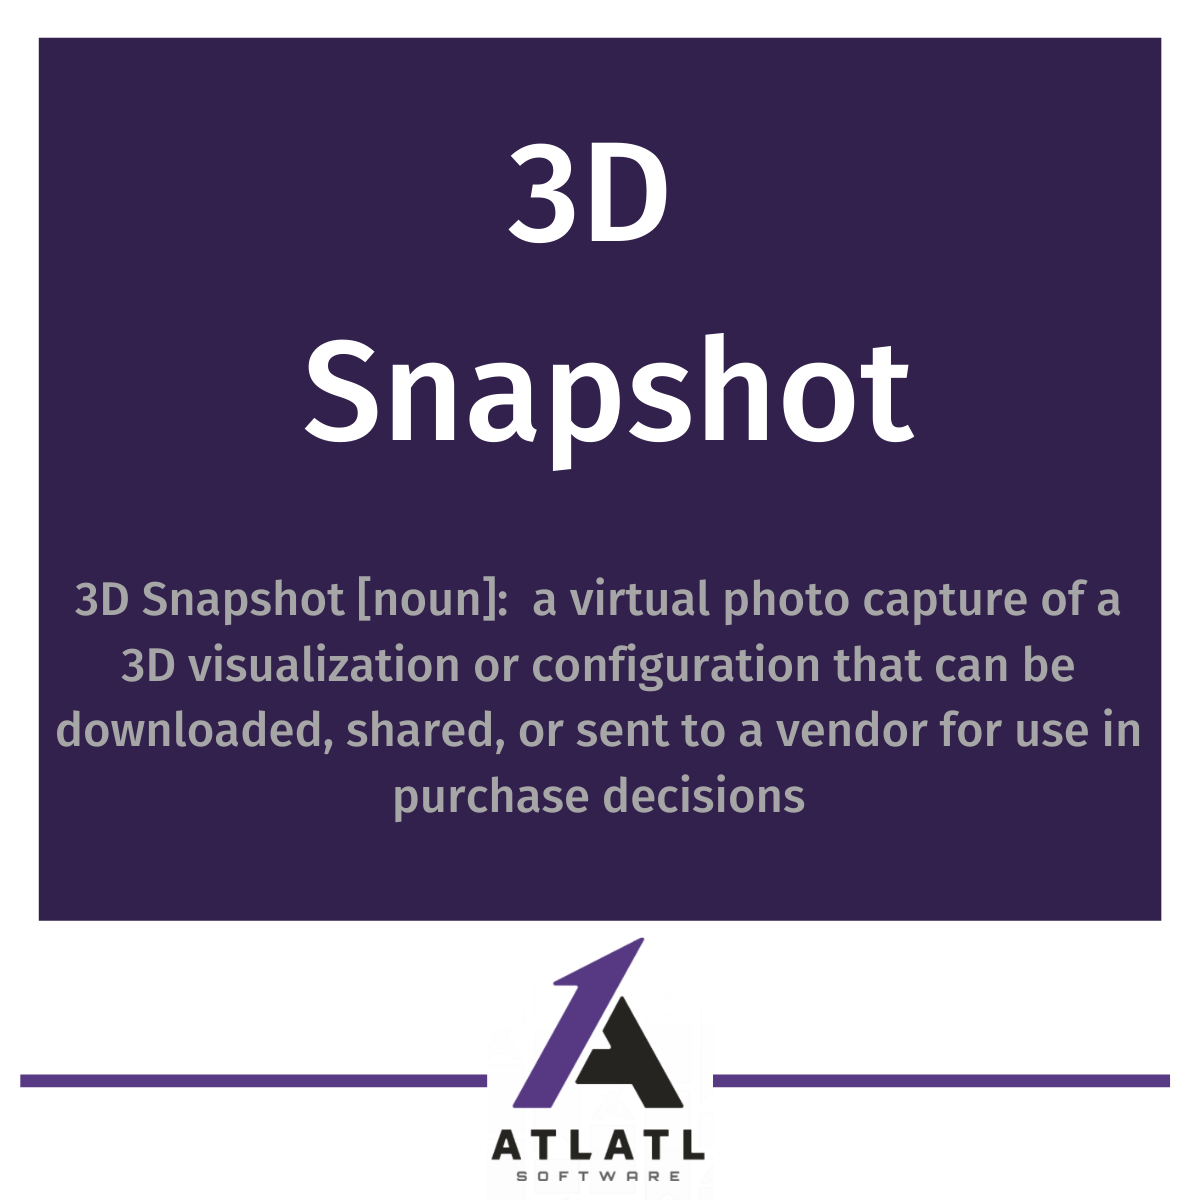 3D technology features for Ecommerce ATLATL